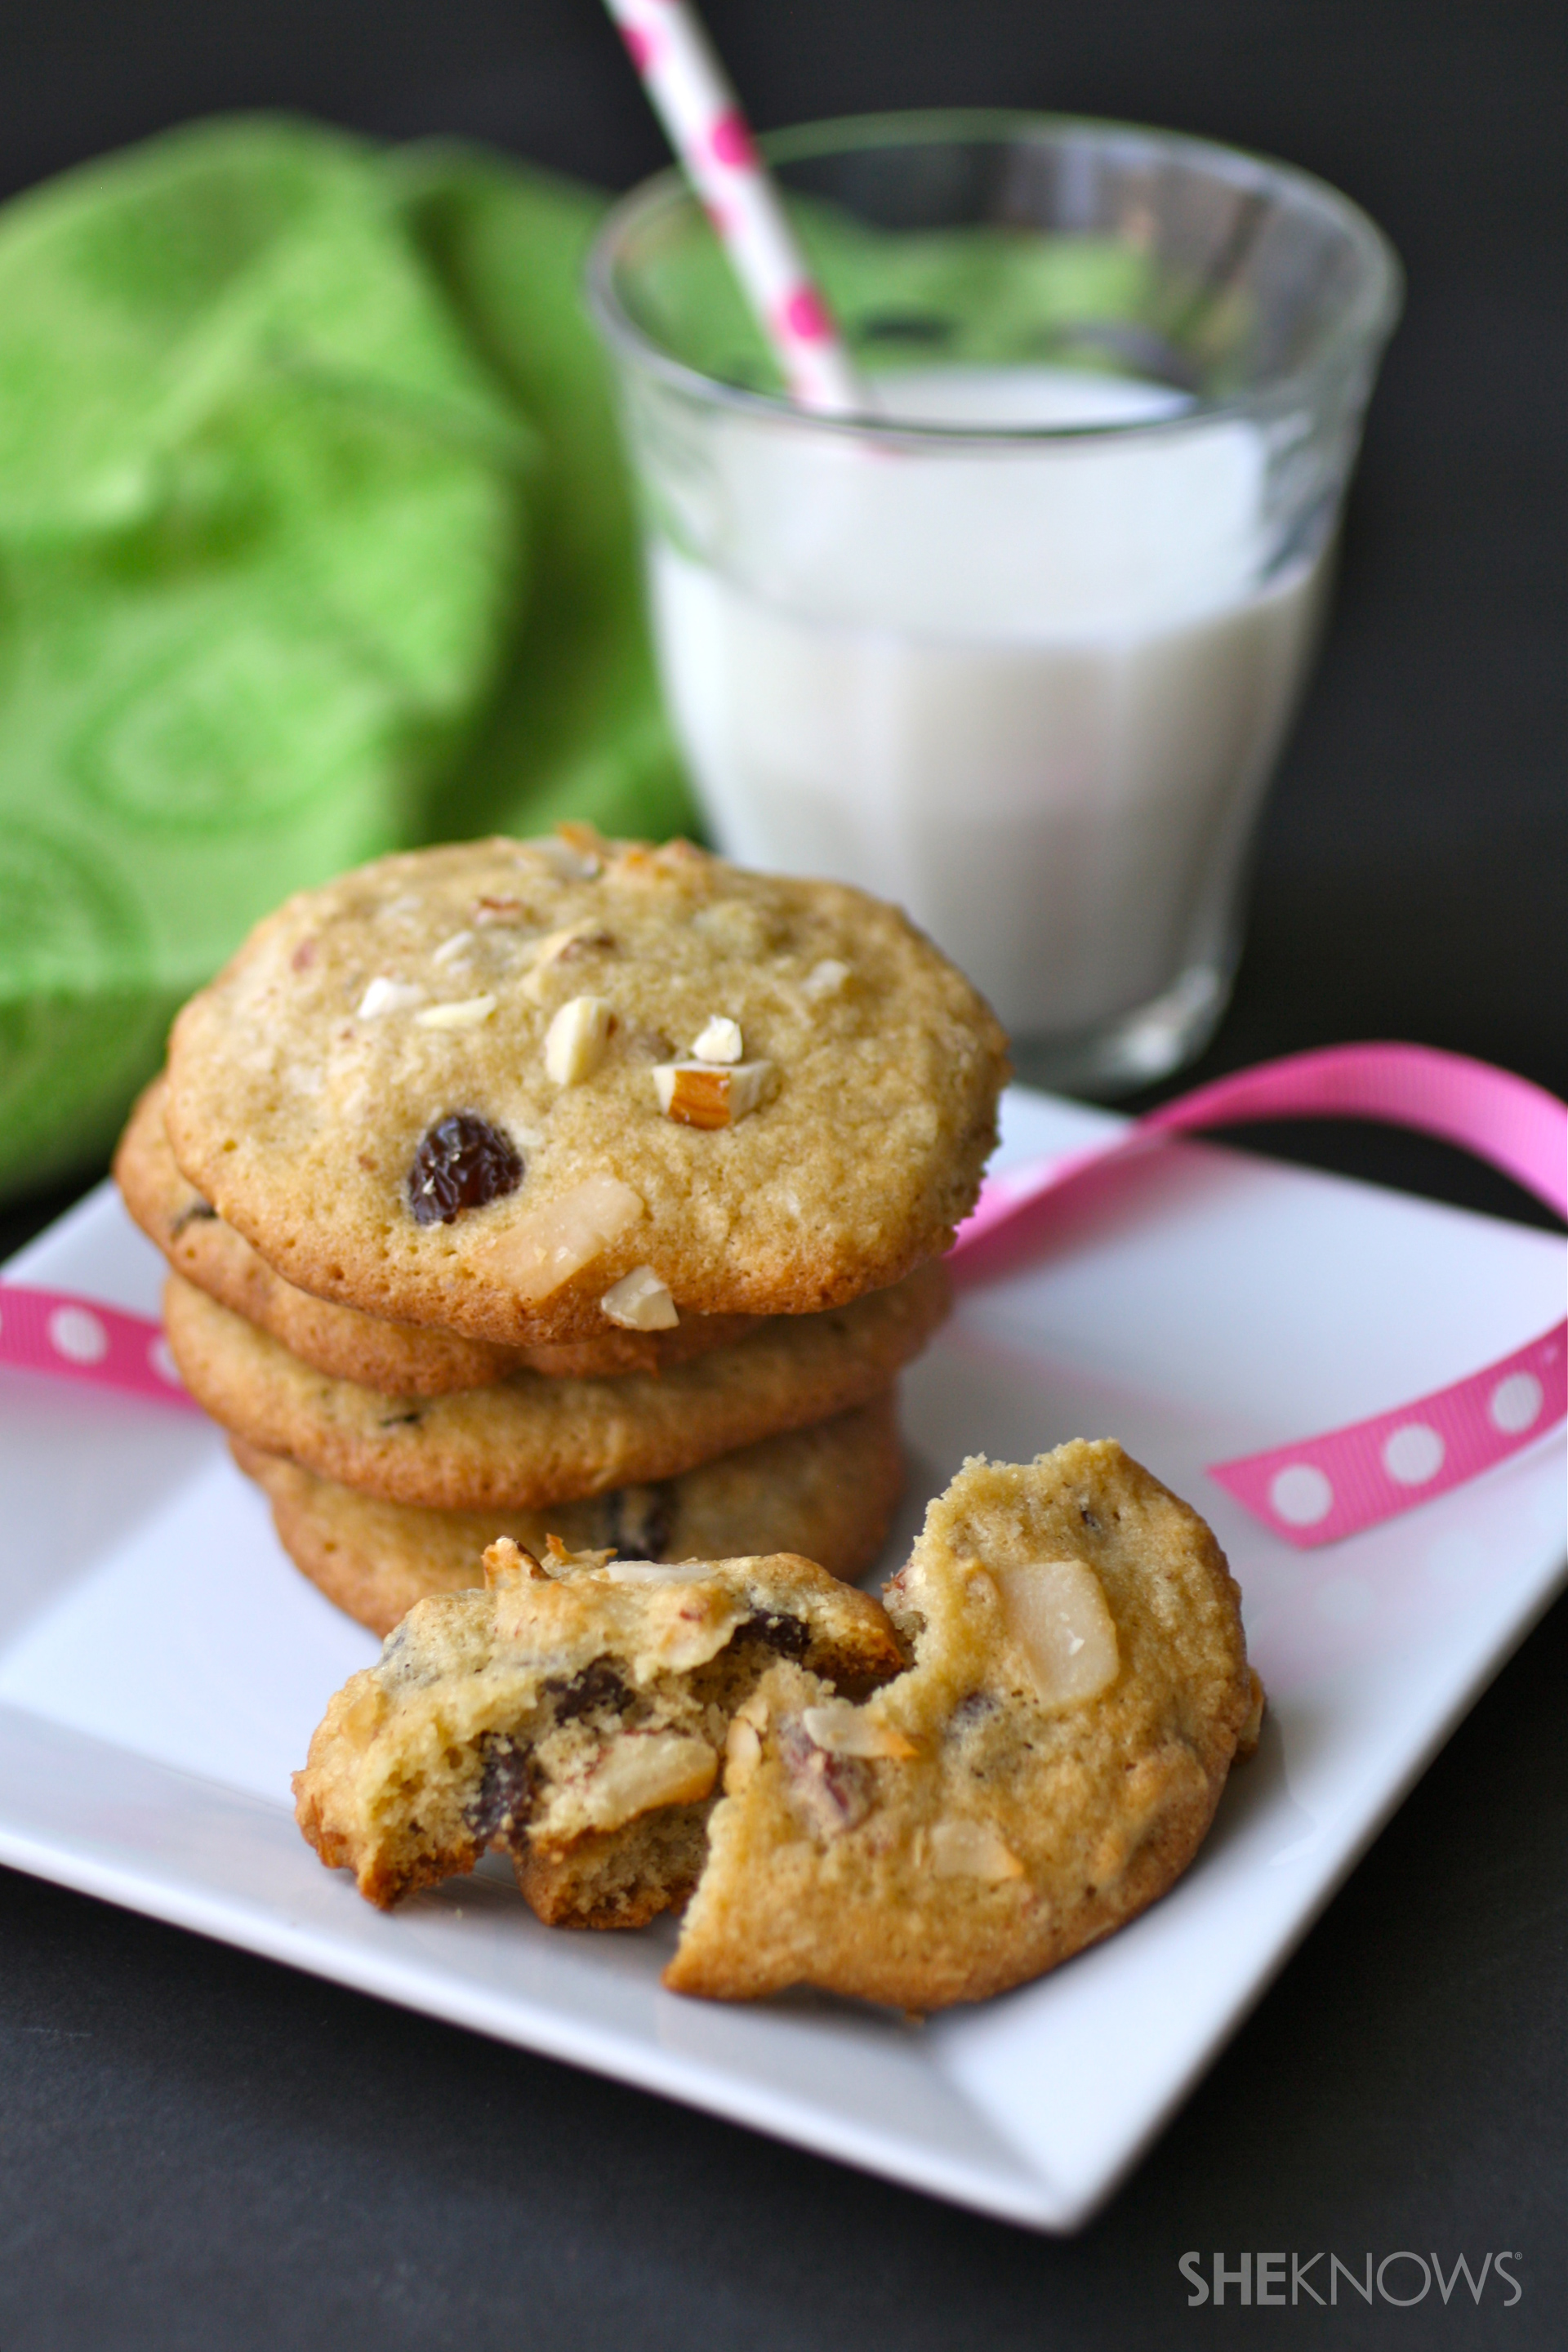 Gluten-free coconut-almond raisin cookies